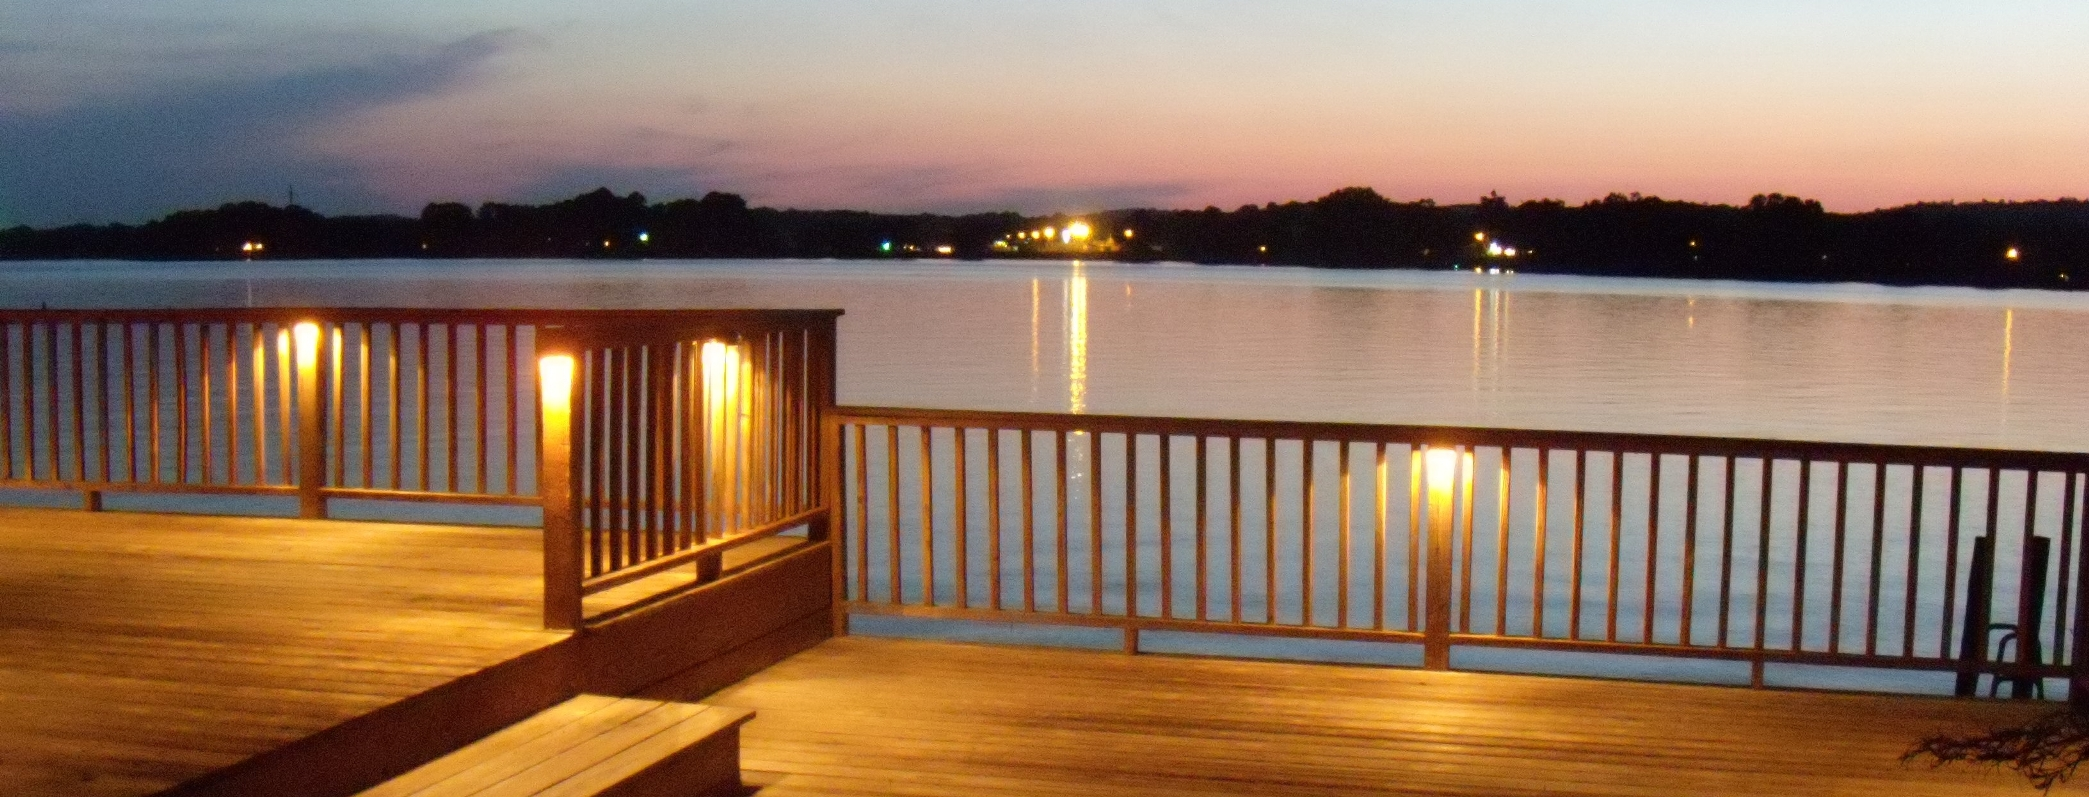 Brilliant Davidson Waterfront Homes For Sale Nc Explore Homes Home Interior And Landscaping Palasignezvosmurscom